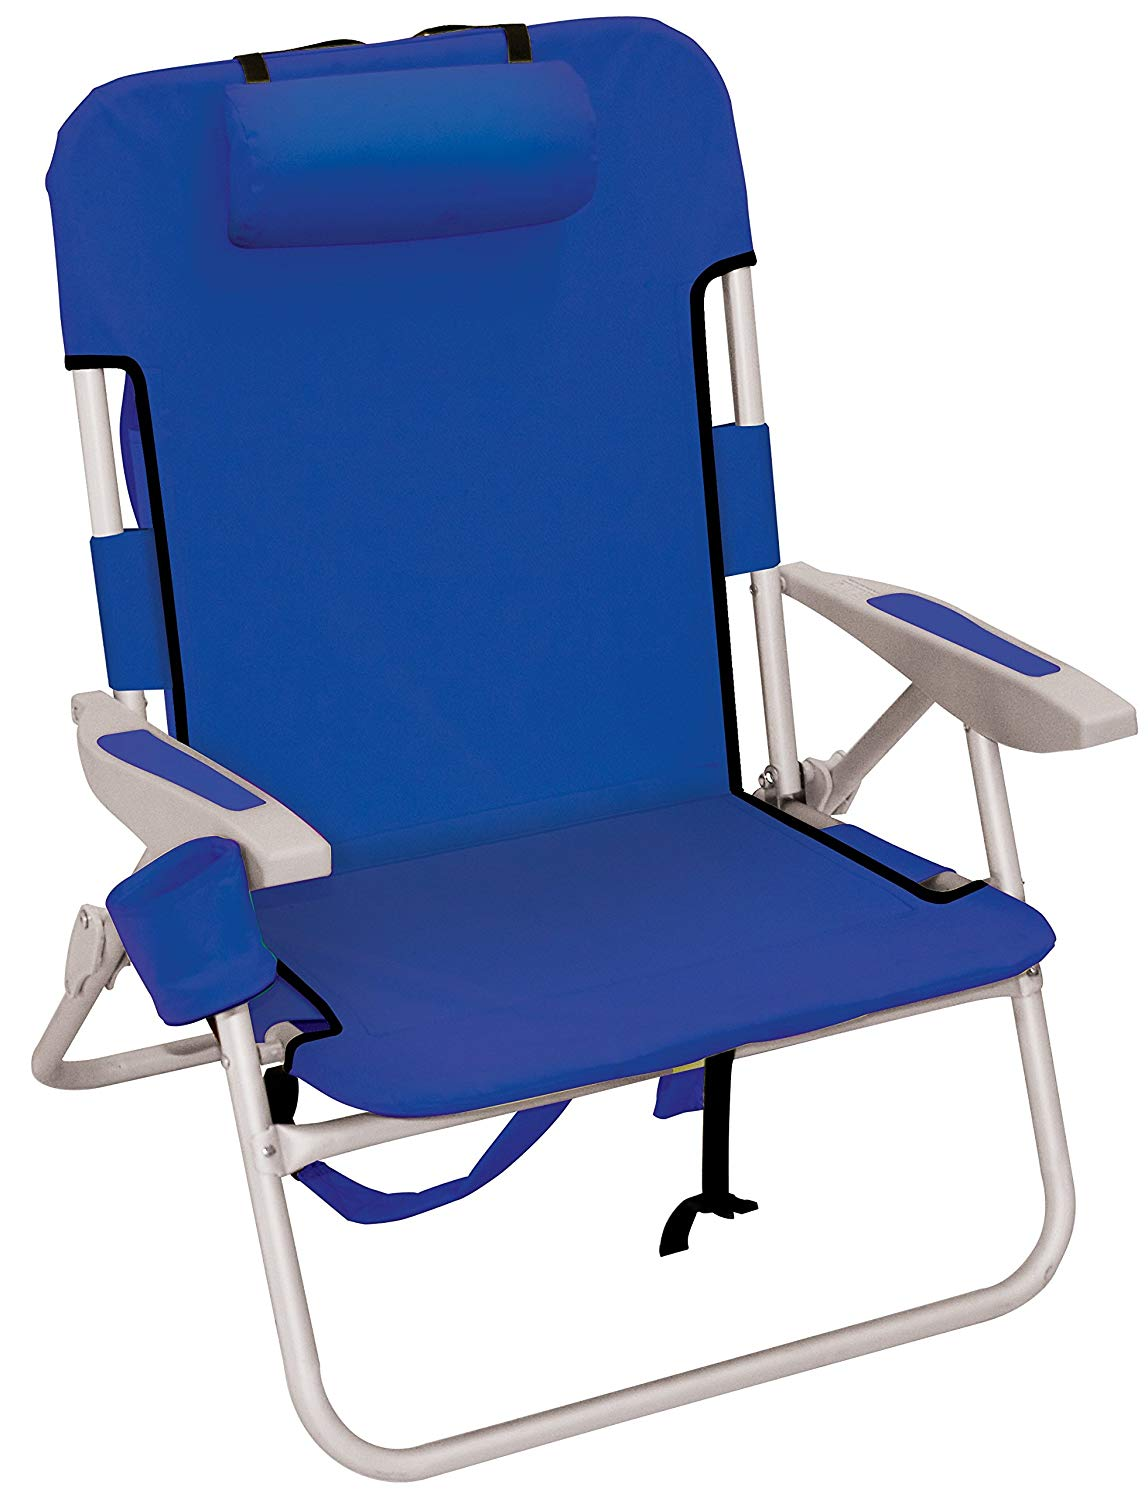 5. Rio Beach Big Boy Backpack Chair